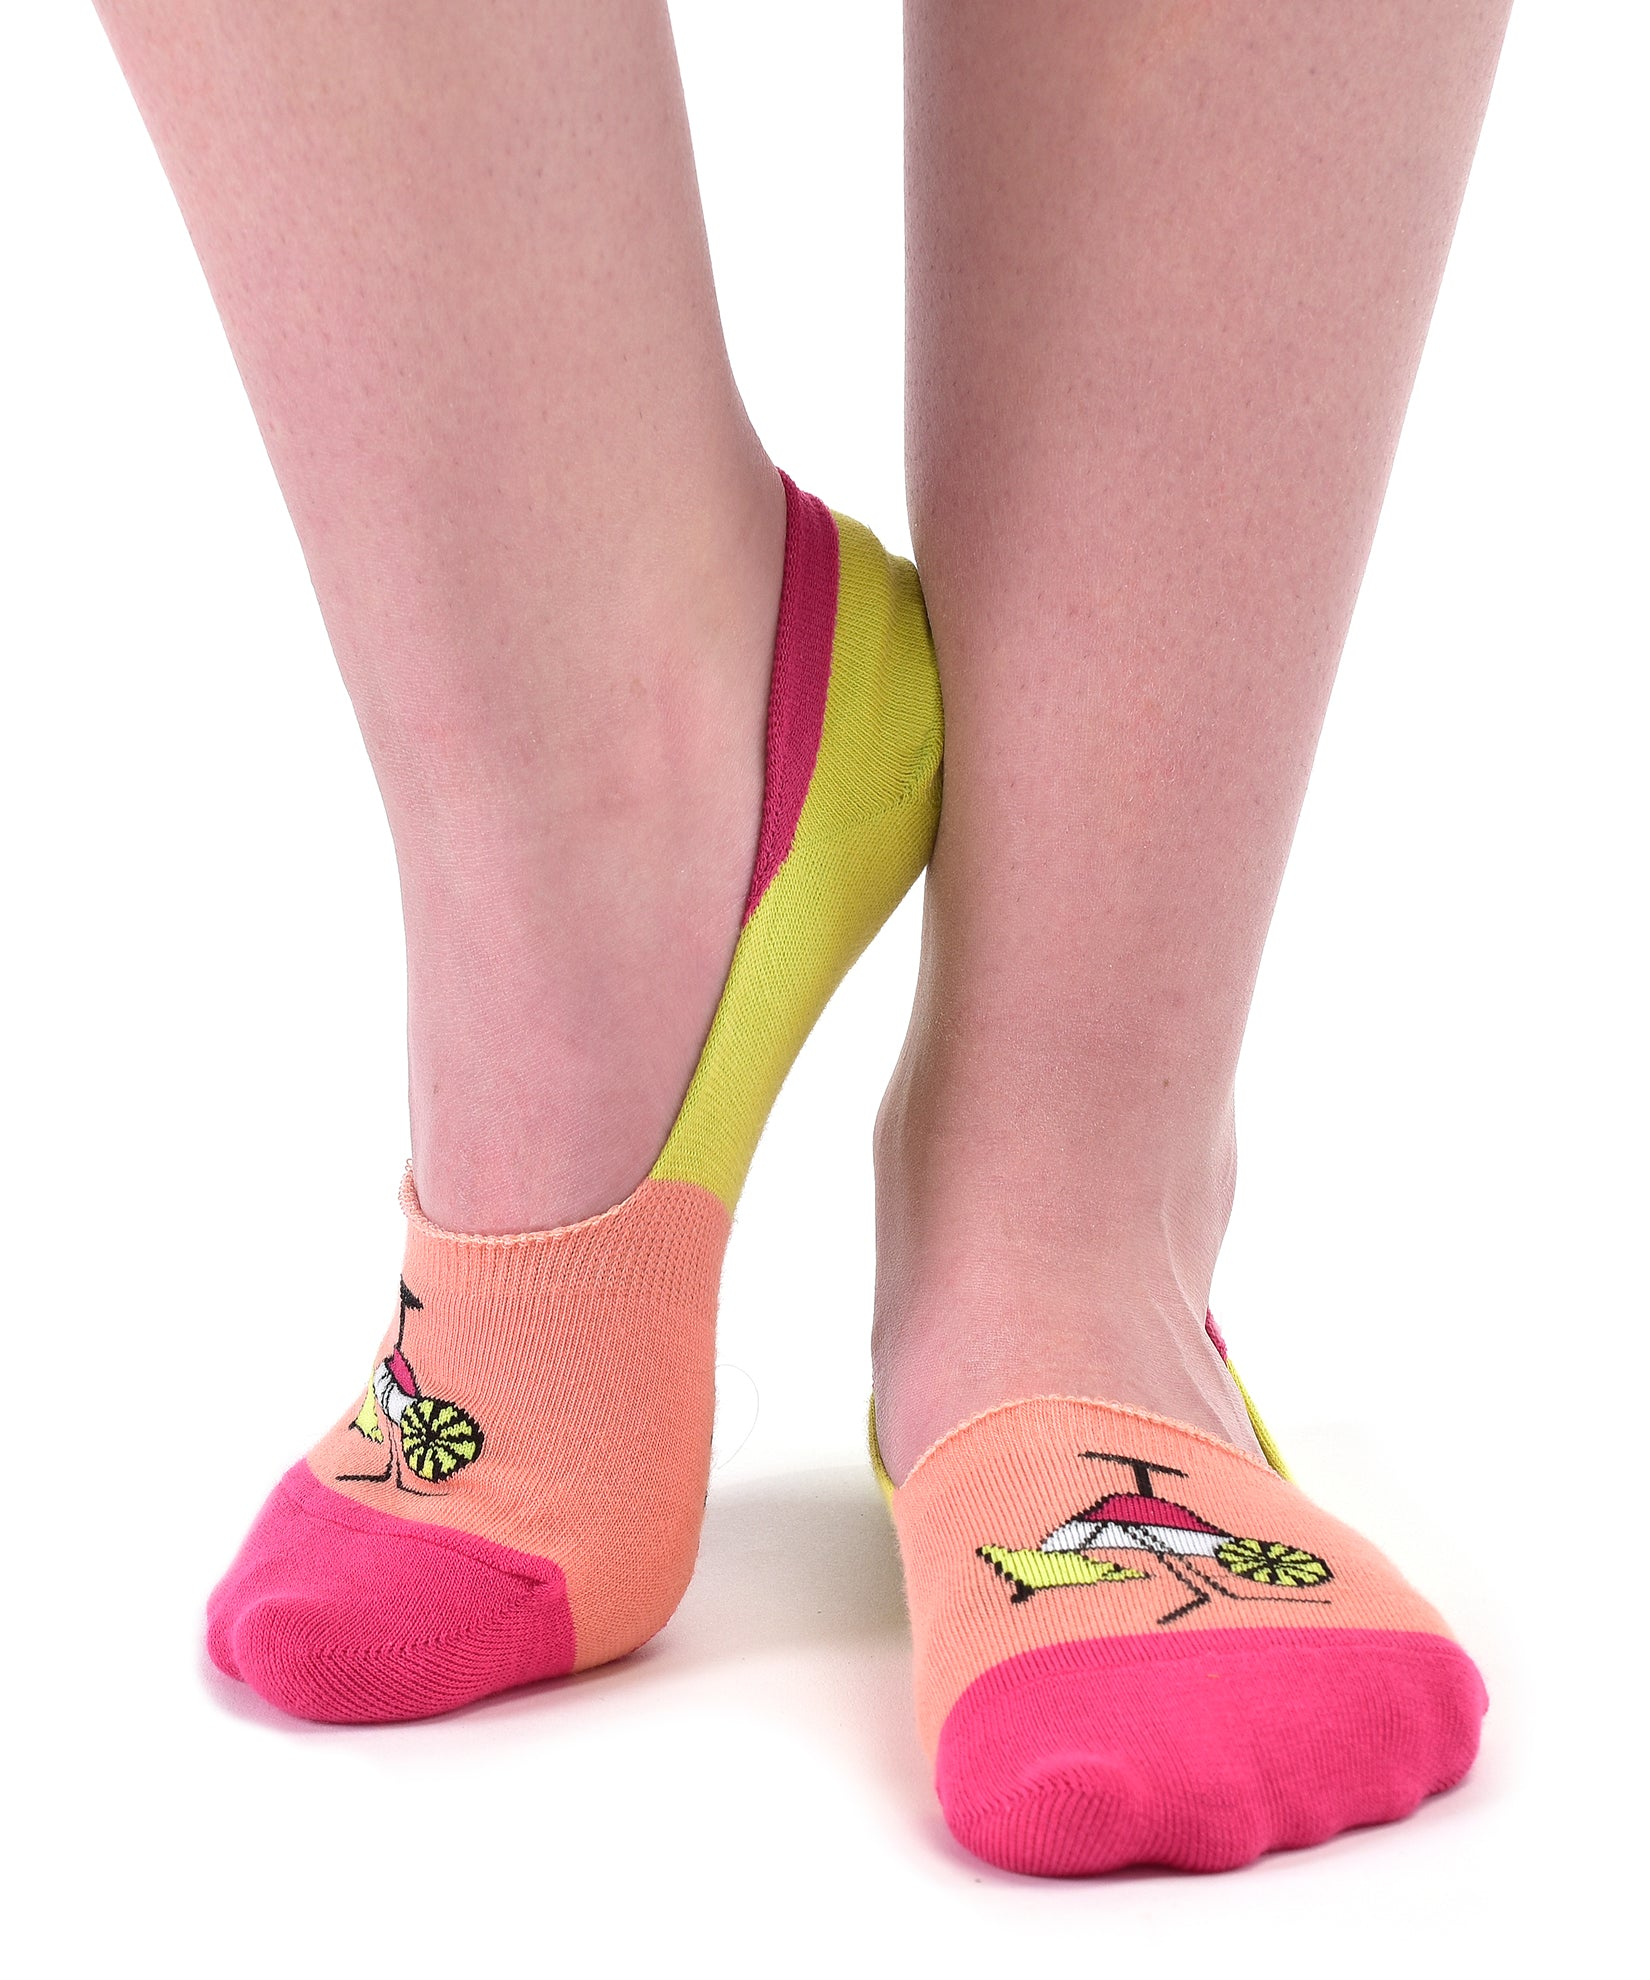 Tequlia MockingBird: Women's Novelty Crew Socks